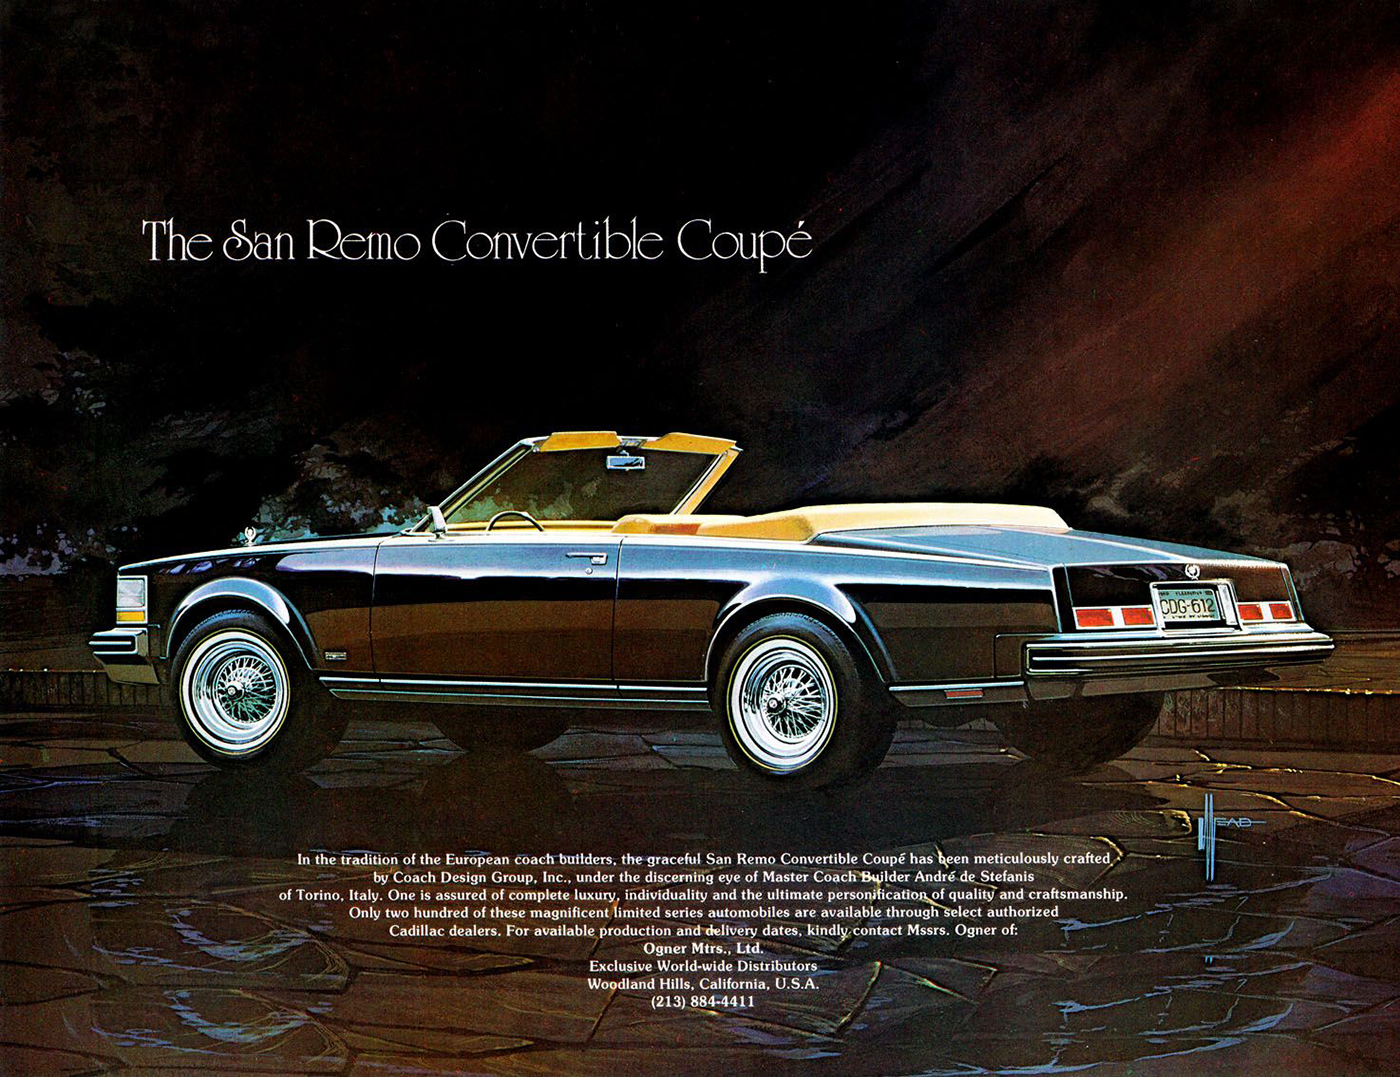 1977 Cadillac, San Remo, Convertible Conversion,